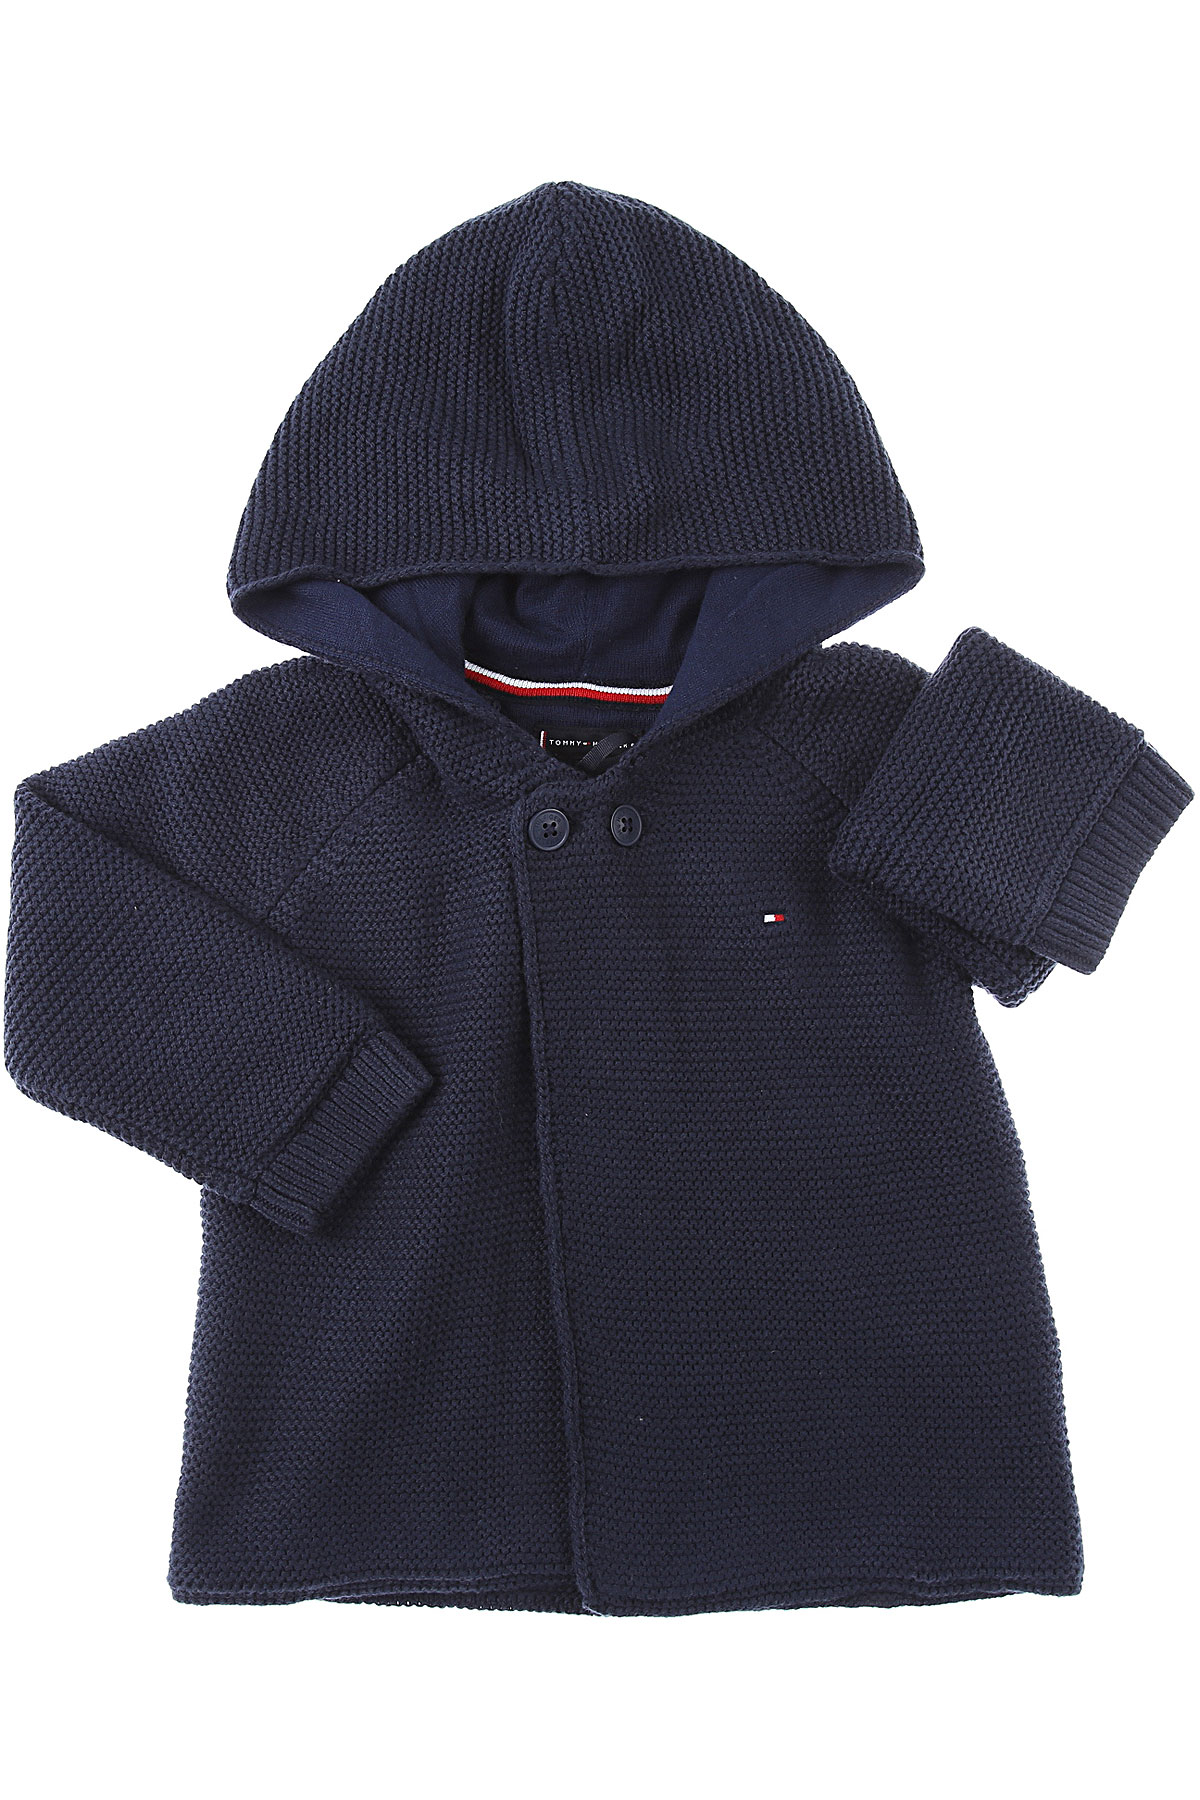 Tommy Hilfiger Baby Sweaters for Boys On Sale, navy, Cotton, 2019, 12 M 18M 2Y